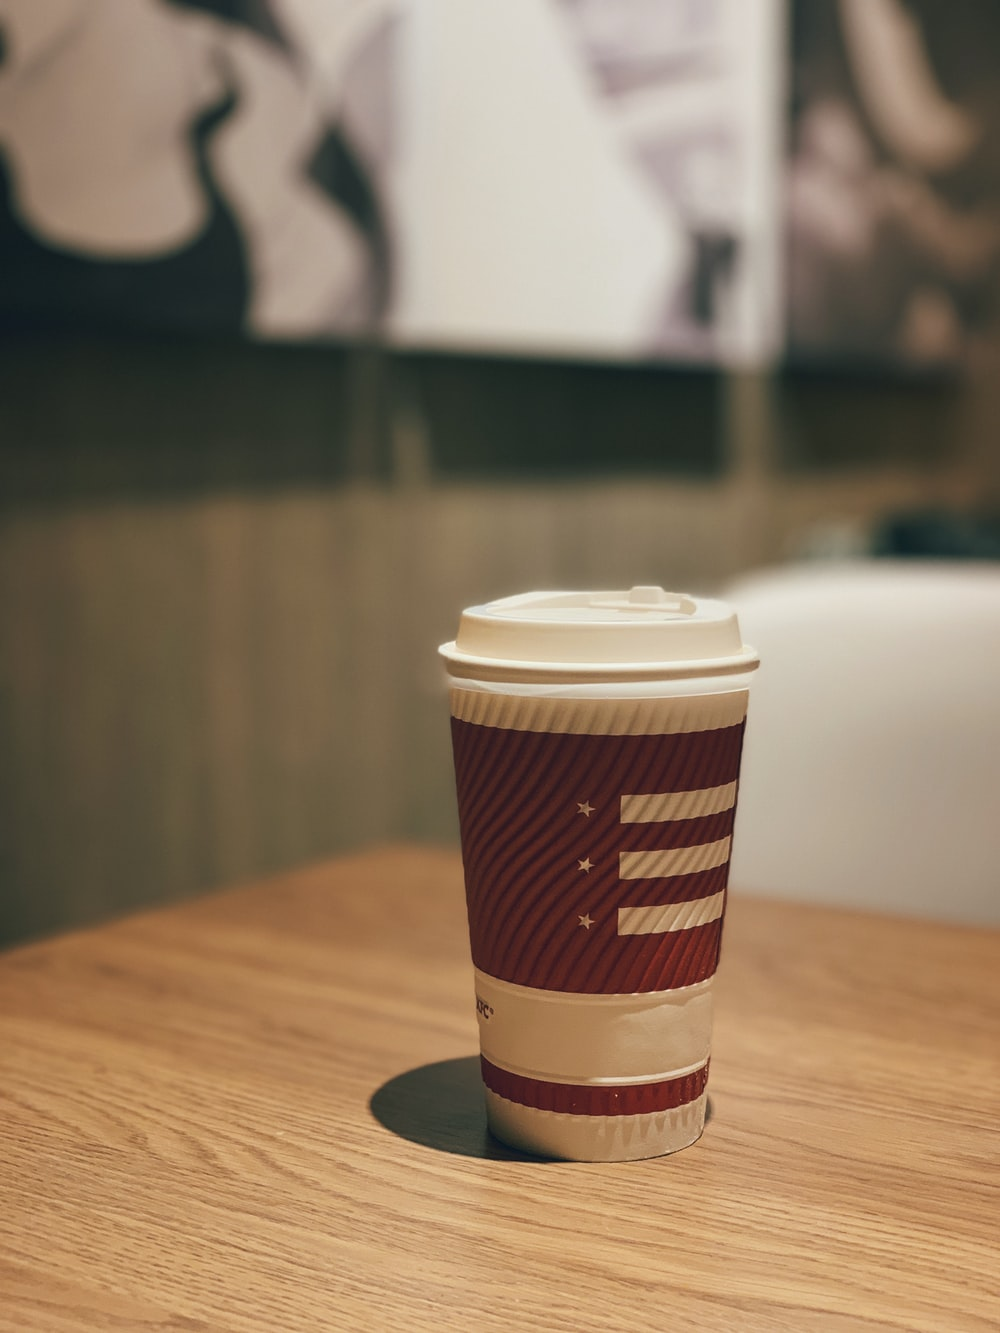 white and maroon disposable cup with lid on table